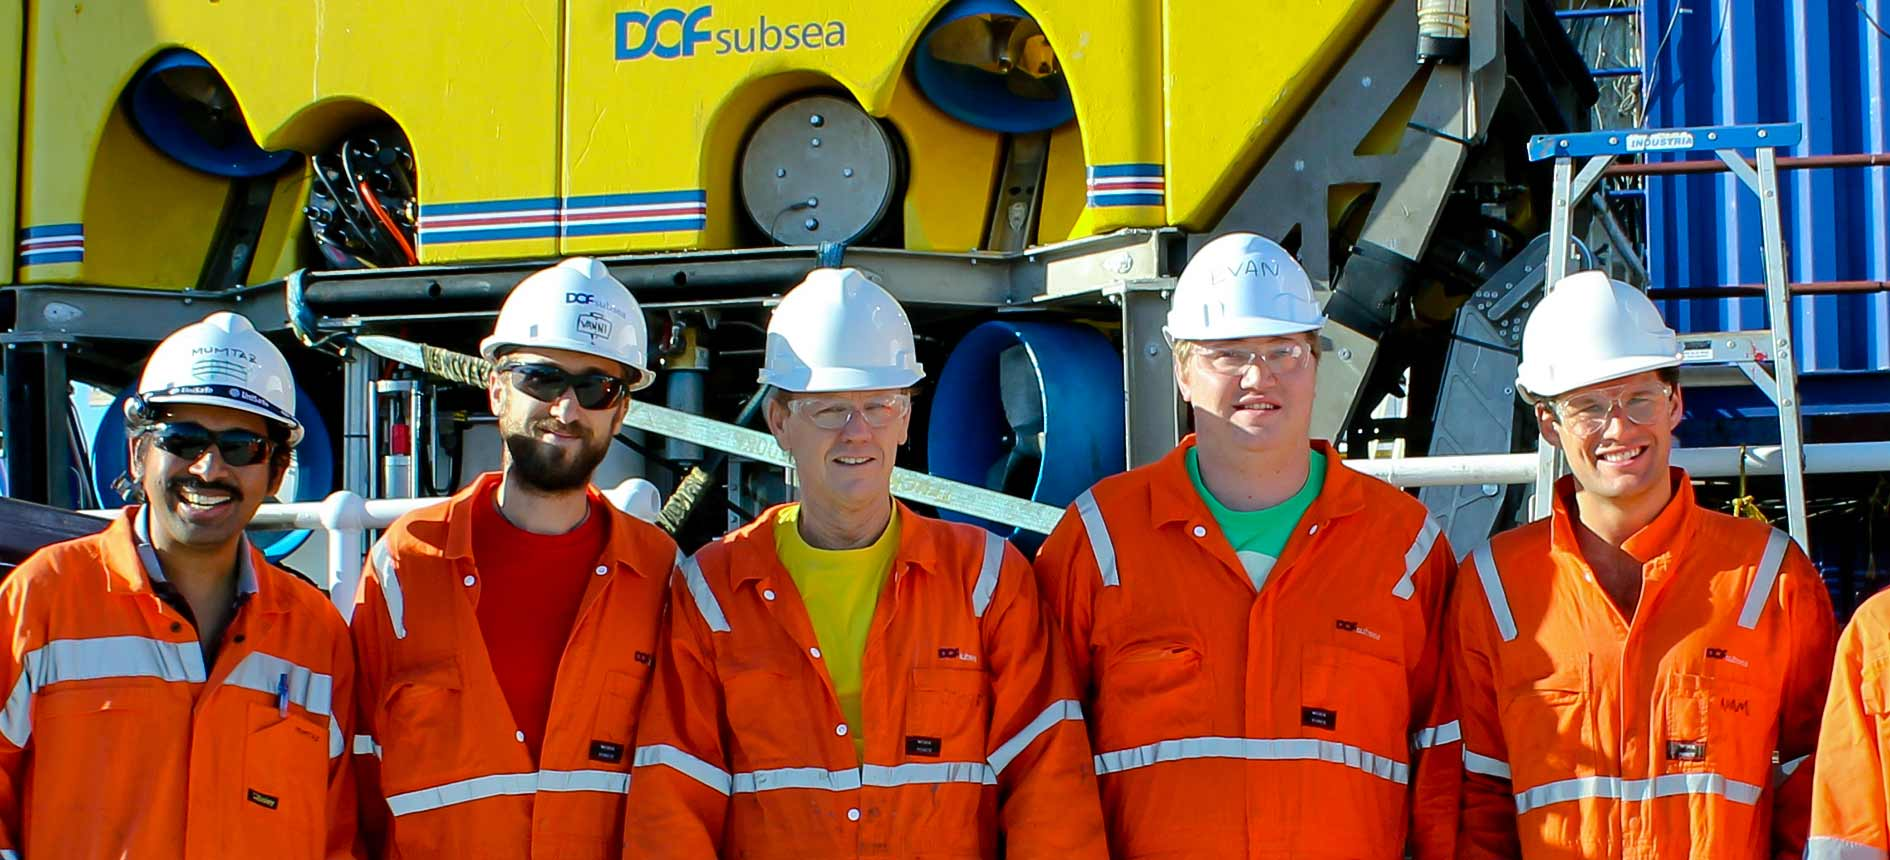 New Offshore Jobs at DOF Subsea